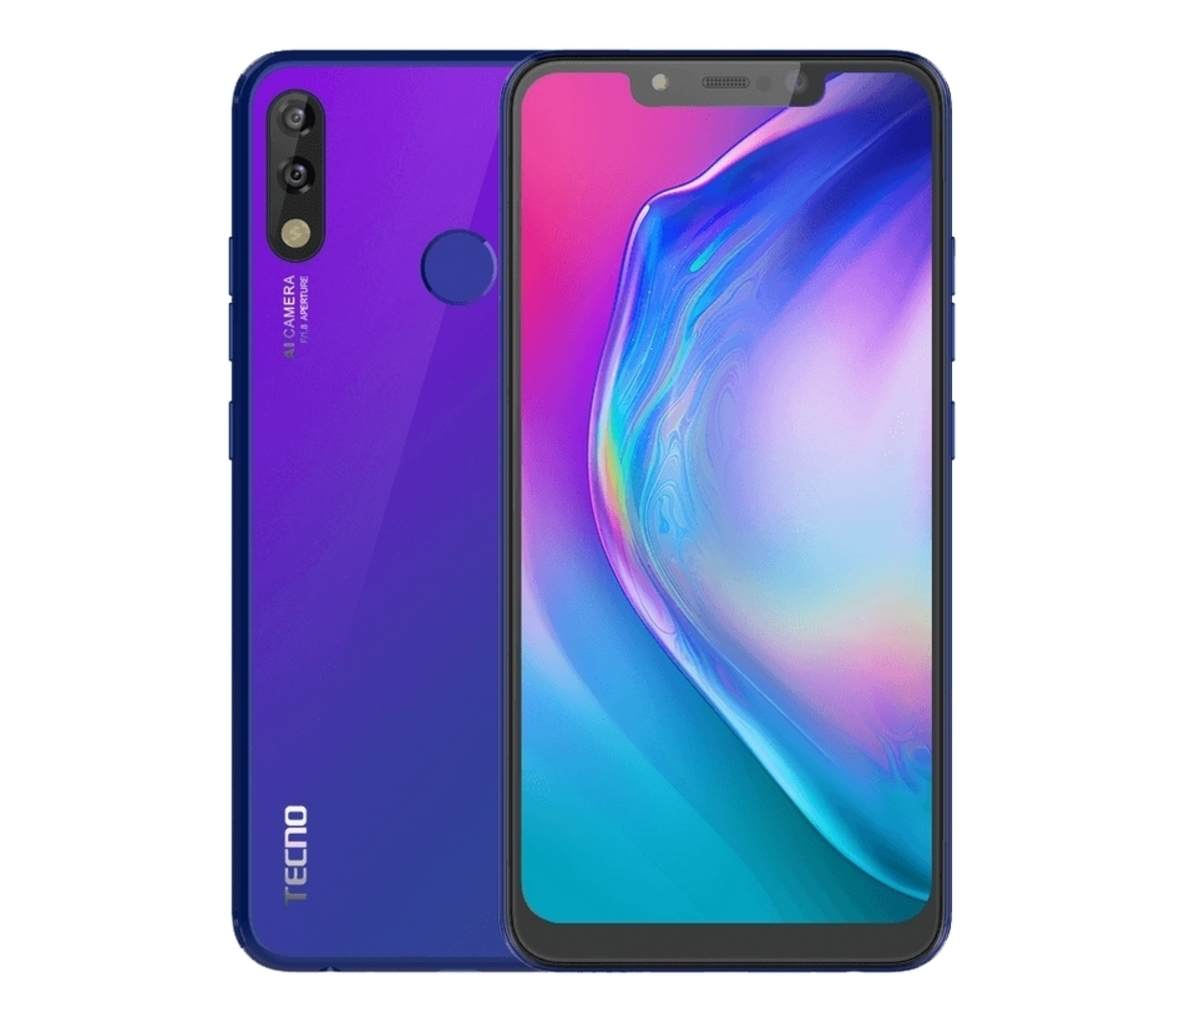 Tecno Camon I Sky 3 Price In Nigeria & Specification